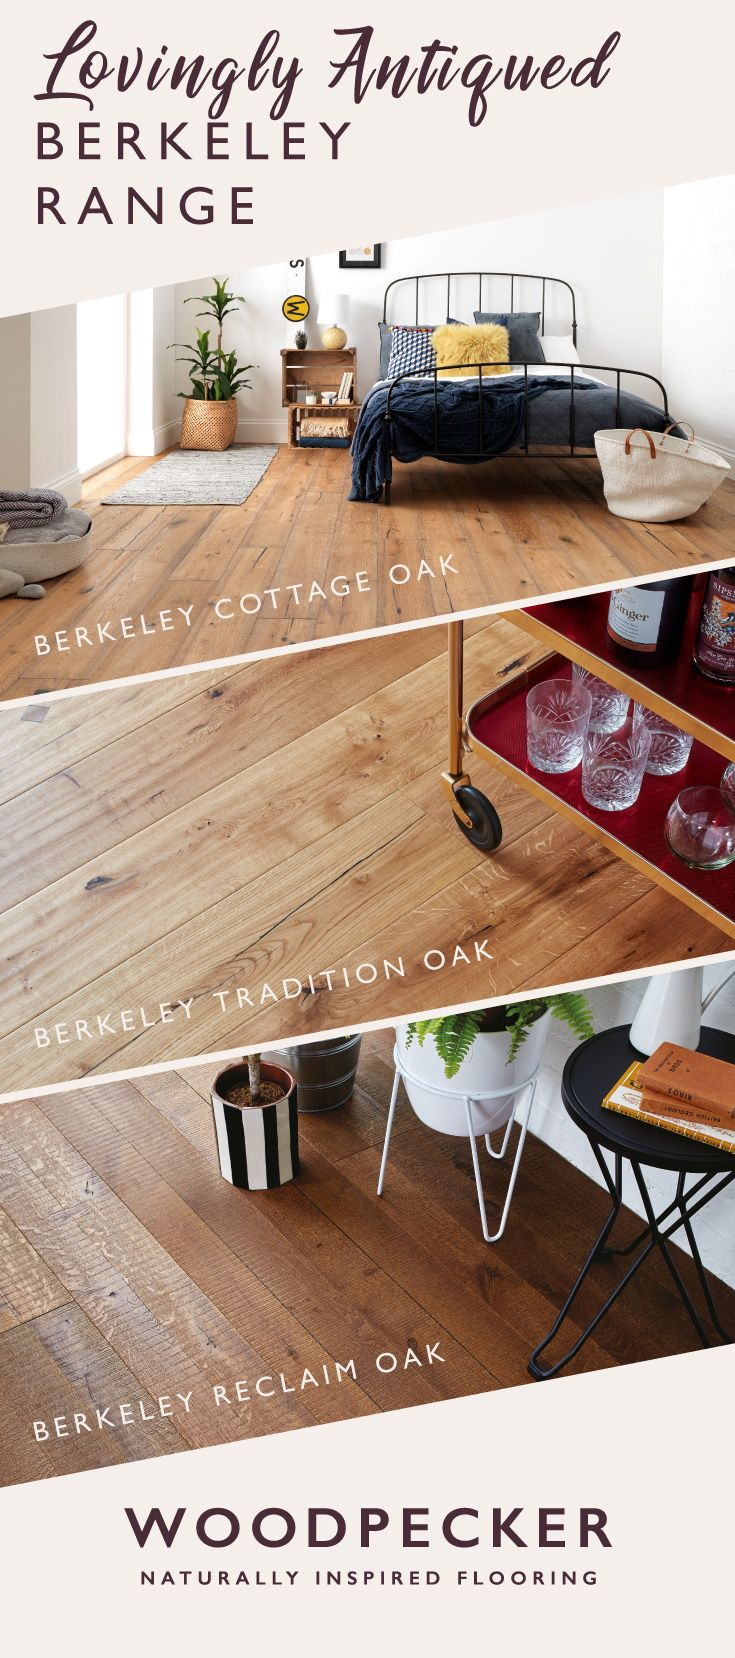 Discover lovingly aged and distressed wood floors in the